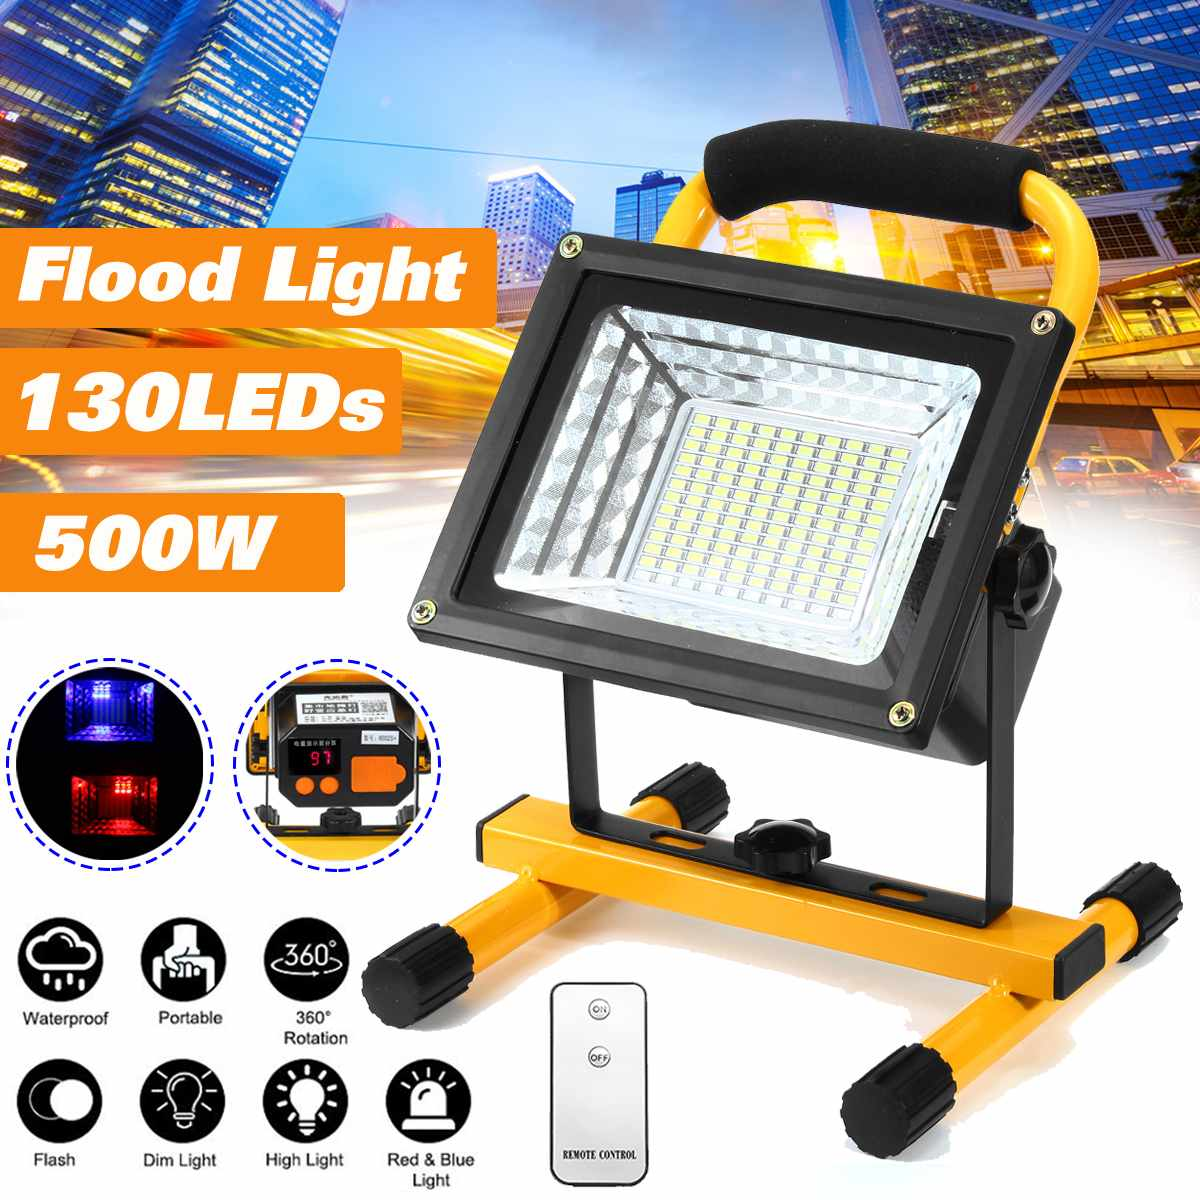 500W 130 LED Rechargeable Floodlight Waterproof Spot Work Camping Outdoor Handheld Work Lights  By 18650 Portable Lantern|Floodlights| |  - title=